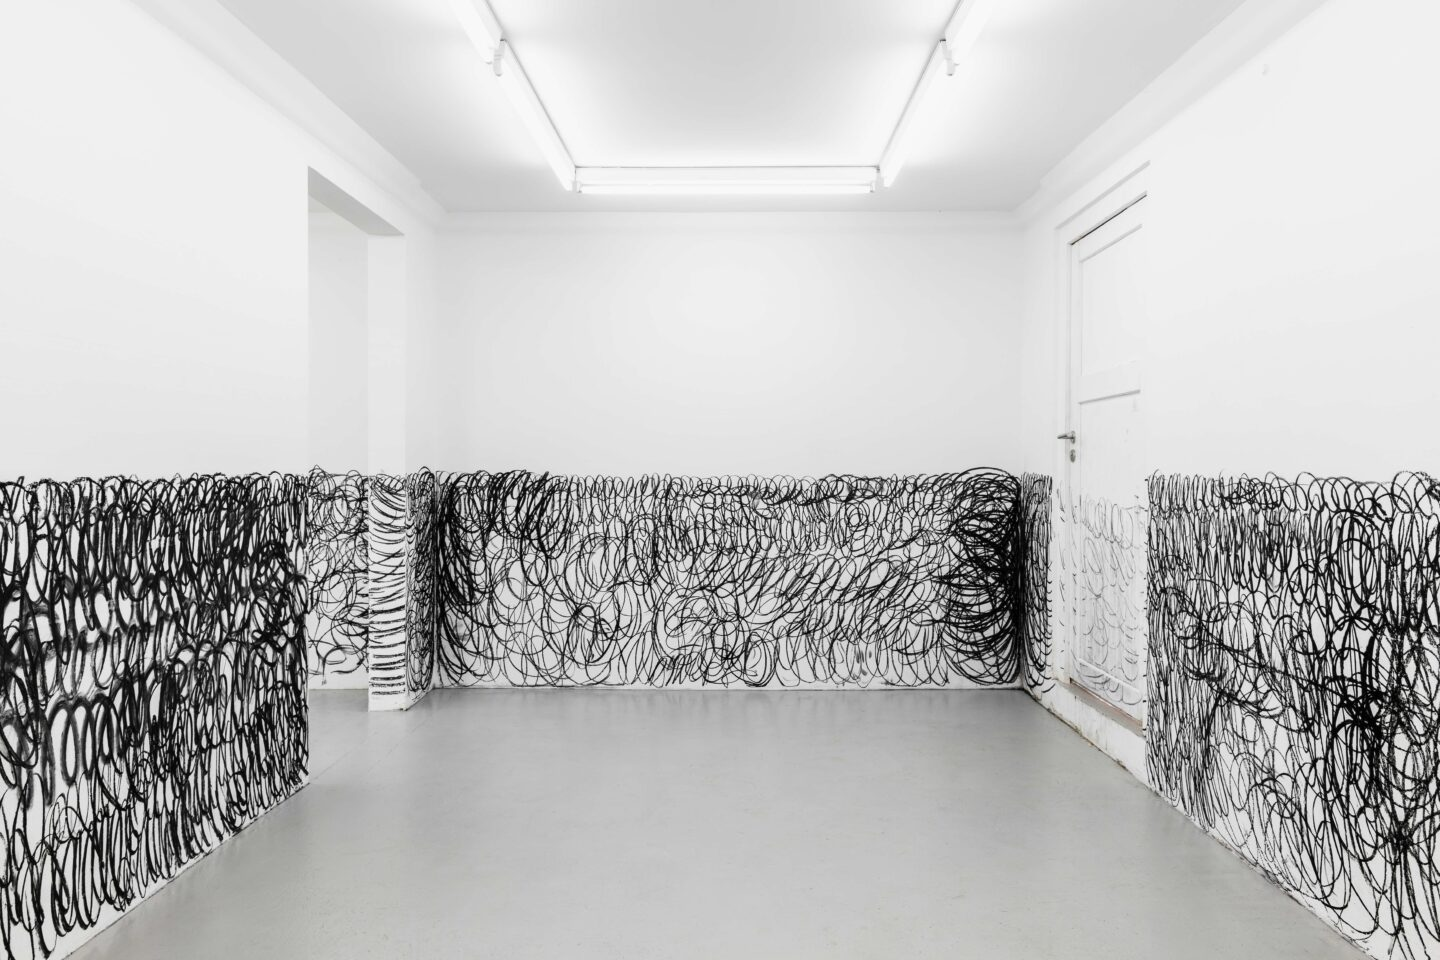 Exhibition View Armen Eloyan Soloshow «ARMEN ELOYAN» at SALTS, Birsfelden, Basel, 2019 / Photo: Gunnar Meier / Courtesy: the artist and SALTS